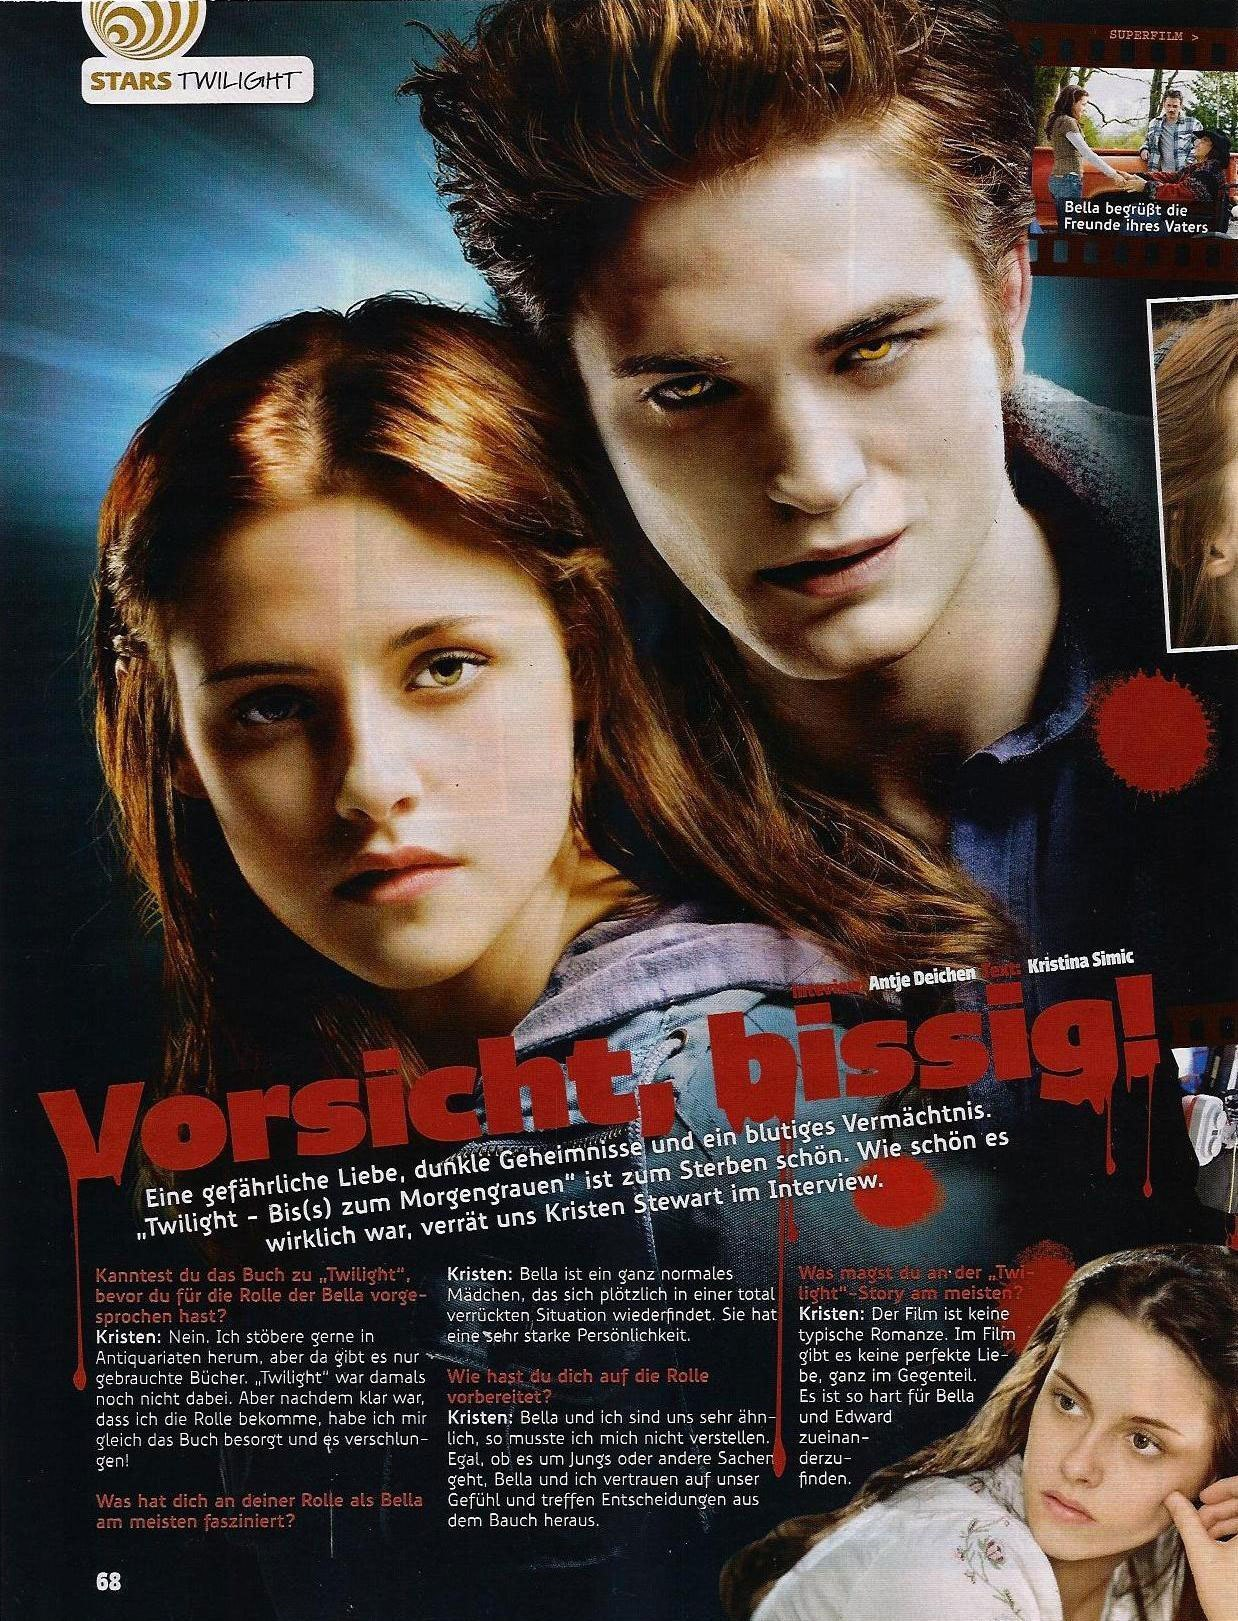 twilight film review essay 'twilight' is the first in a series of four books by stephenie meyer although billed as young adult, twilight appeals to a much broader audience.